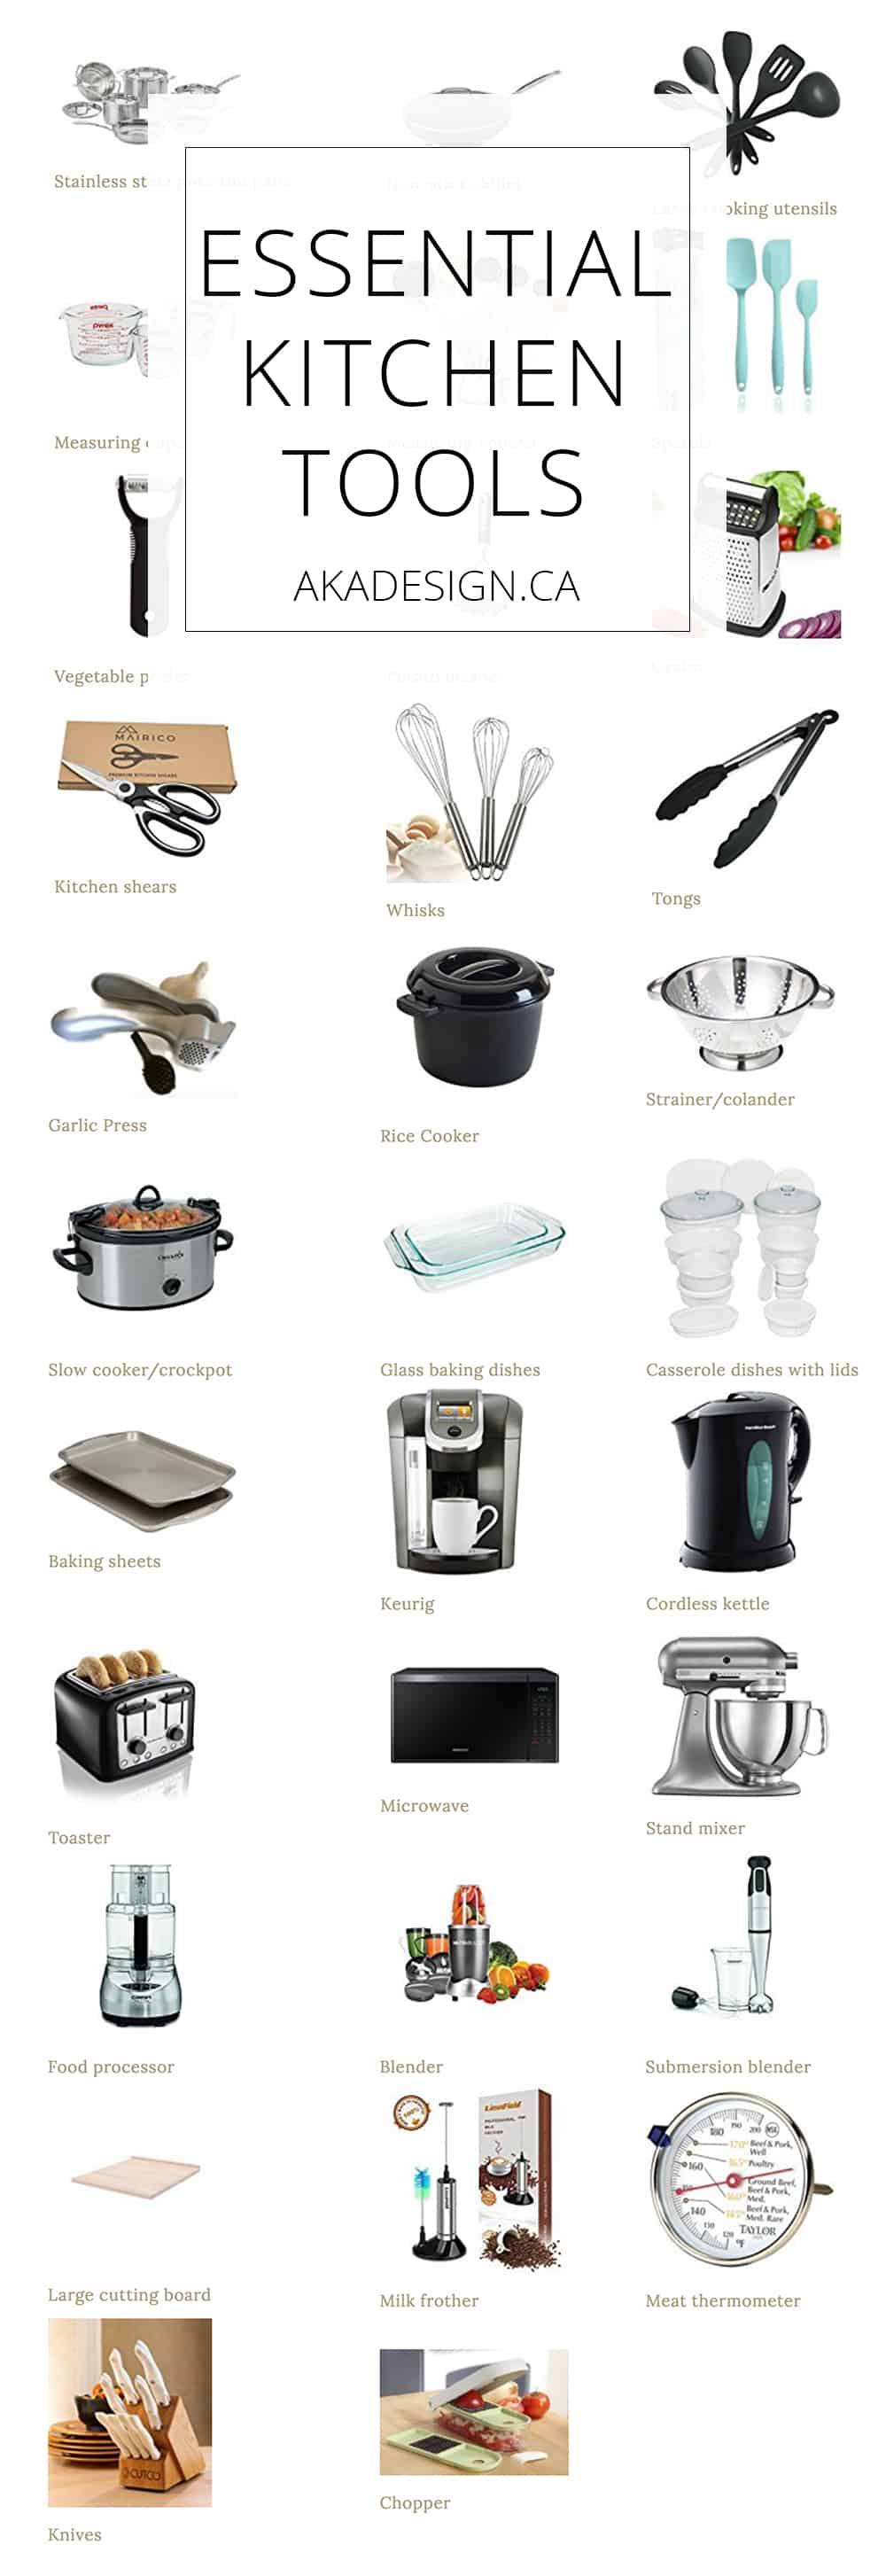 Essential Kitchen Tools - 25+ Tools for a Well-Appointed Kitchen